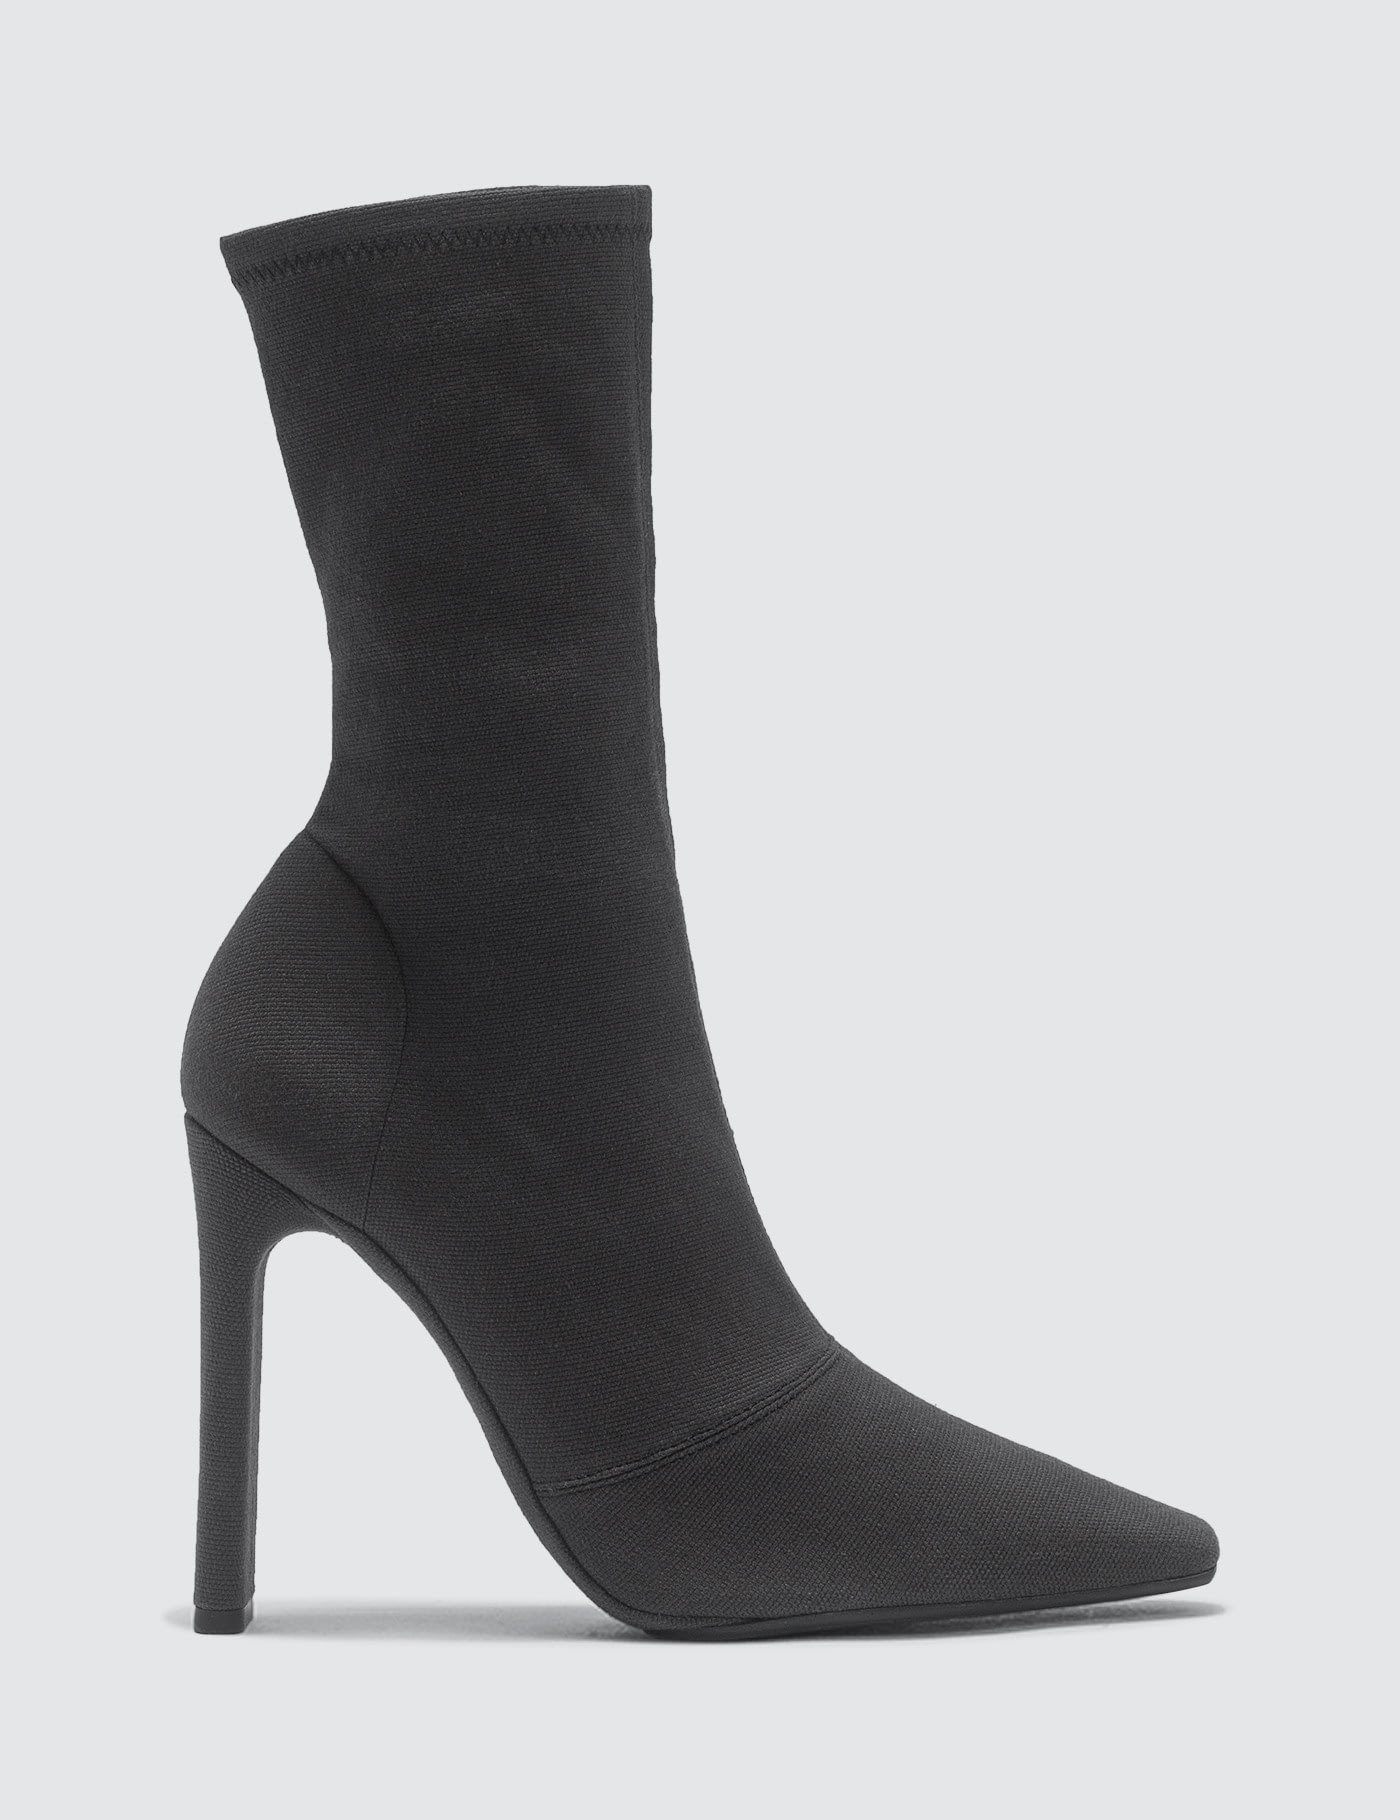 outlet store d2744 cb74f Stretch Ankle Boots 110mm, Yeezy